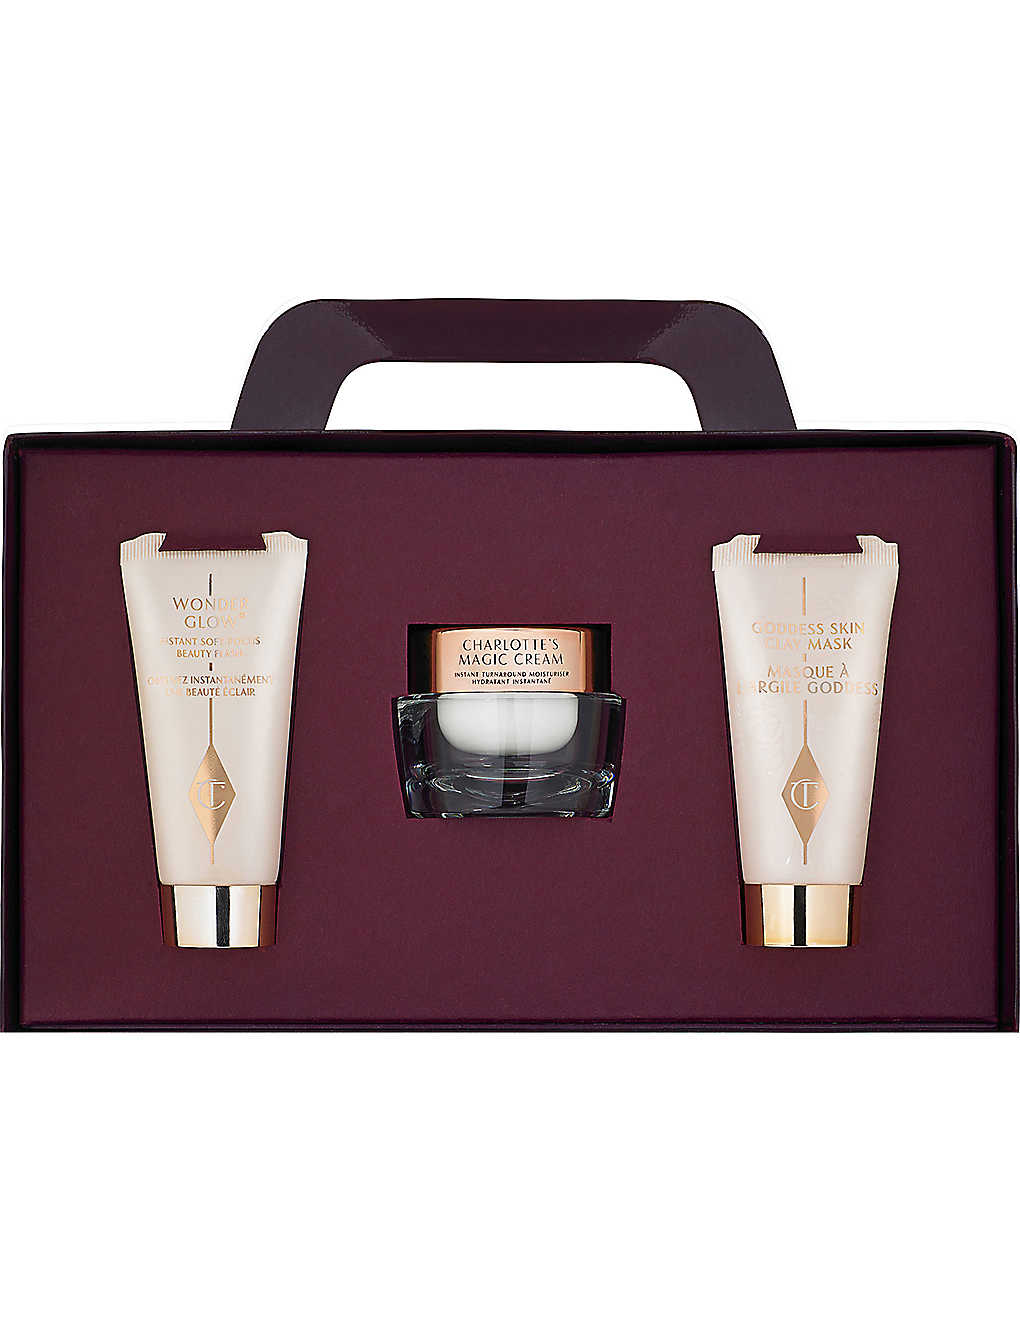 CHARLOTTE TILBURY: The Gift of Goddess Skin Travel Kit